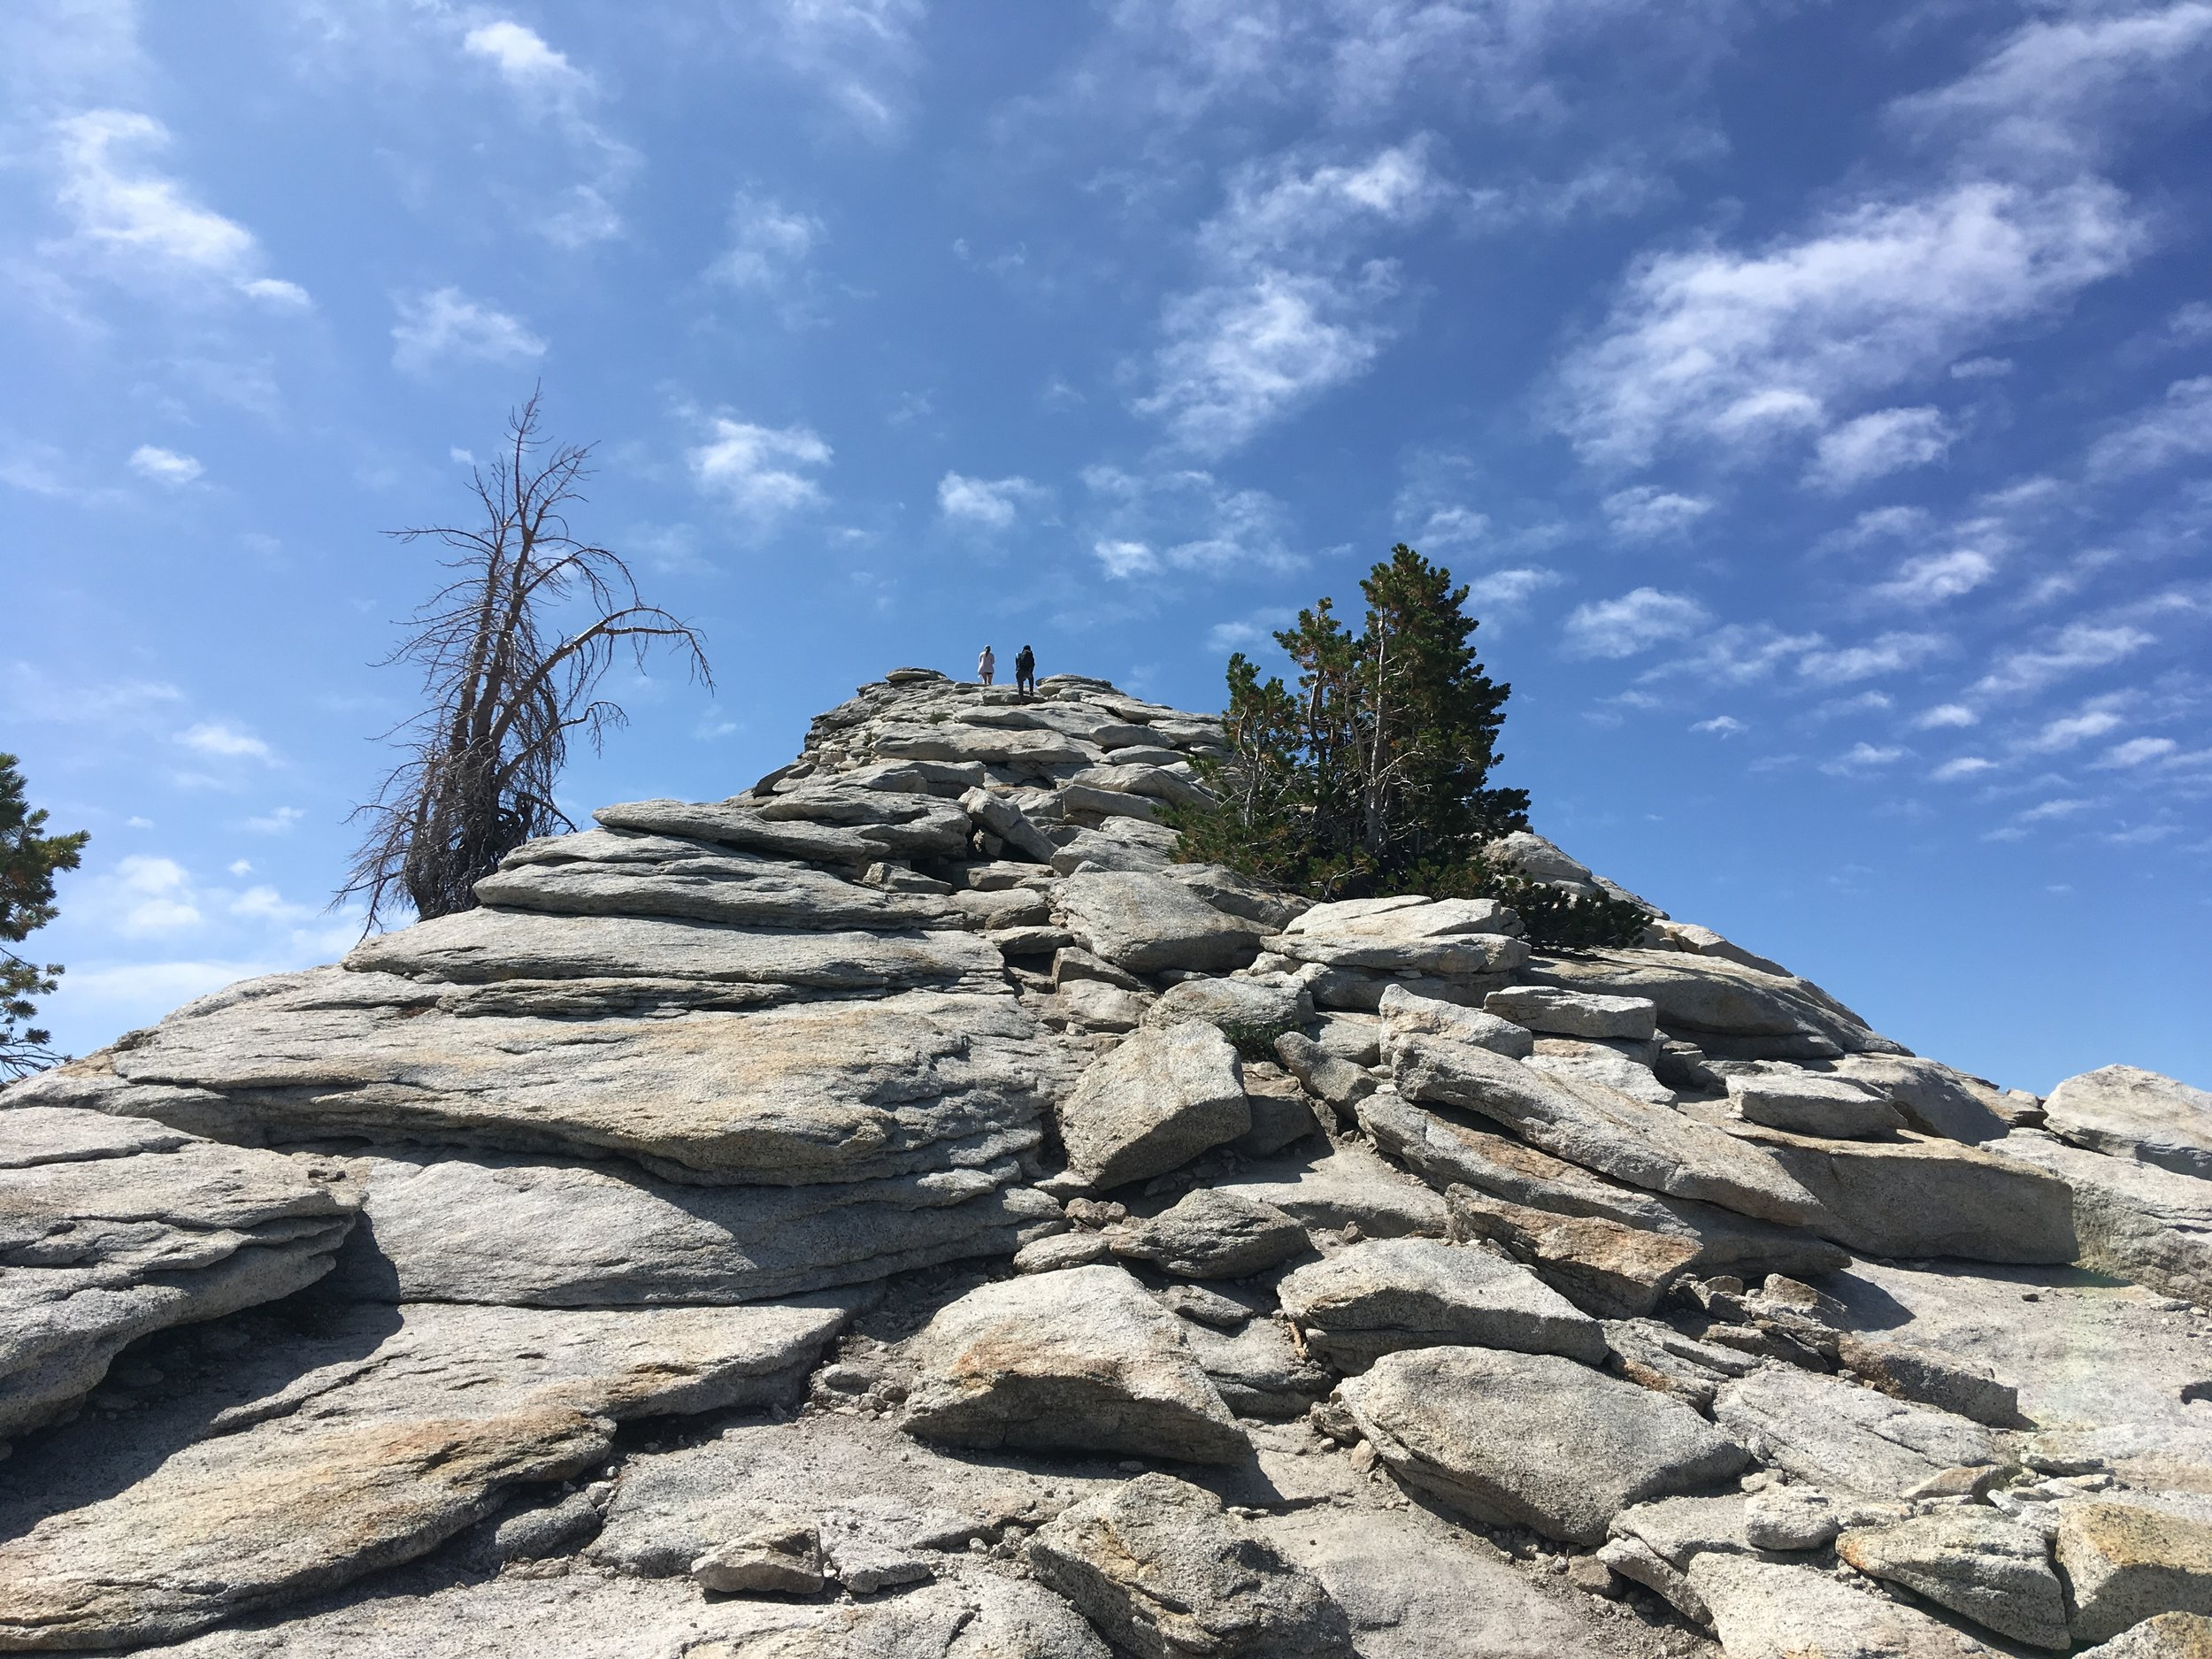 Clouds Rest - September 2019 - Final ascent to the top of Clouds Rest